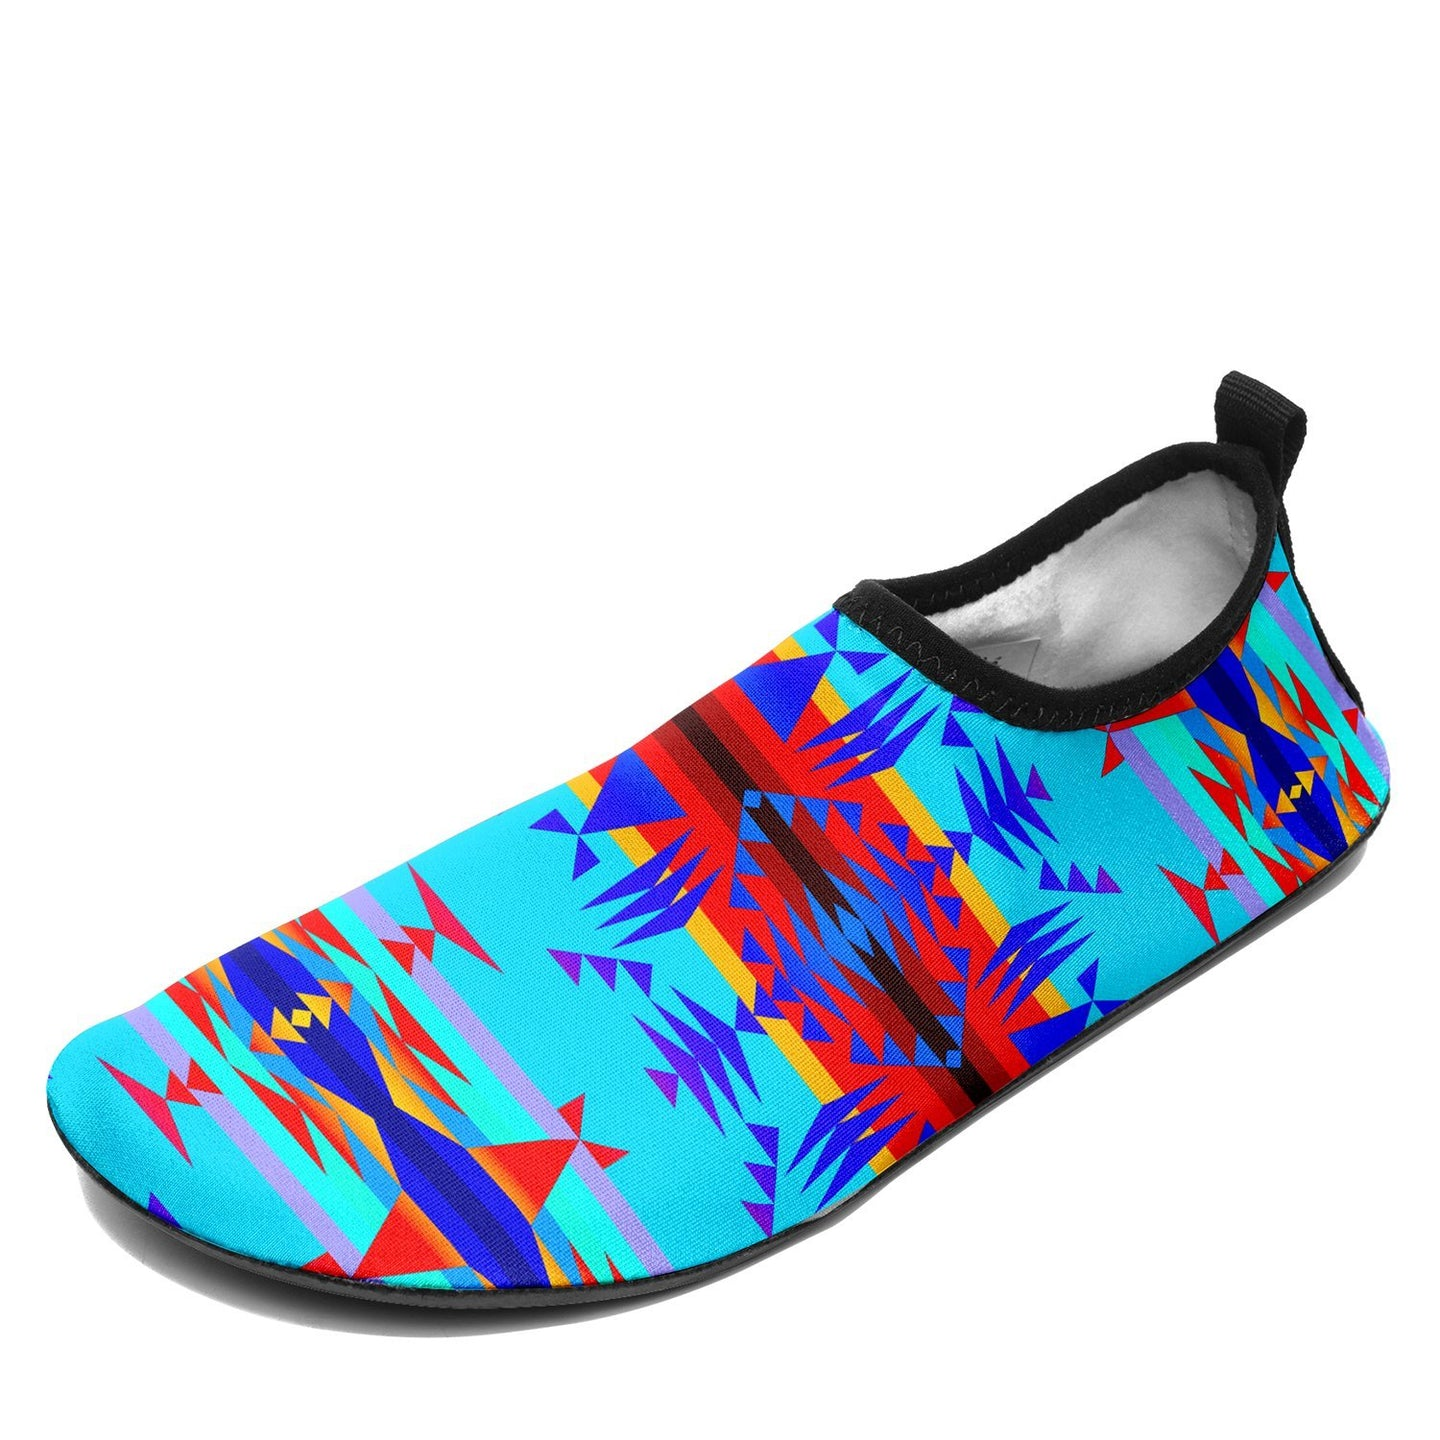 Between the Mountains Blue Sockamoccs Slip On Shoes 49 Dzine